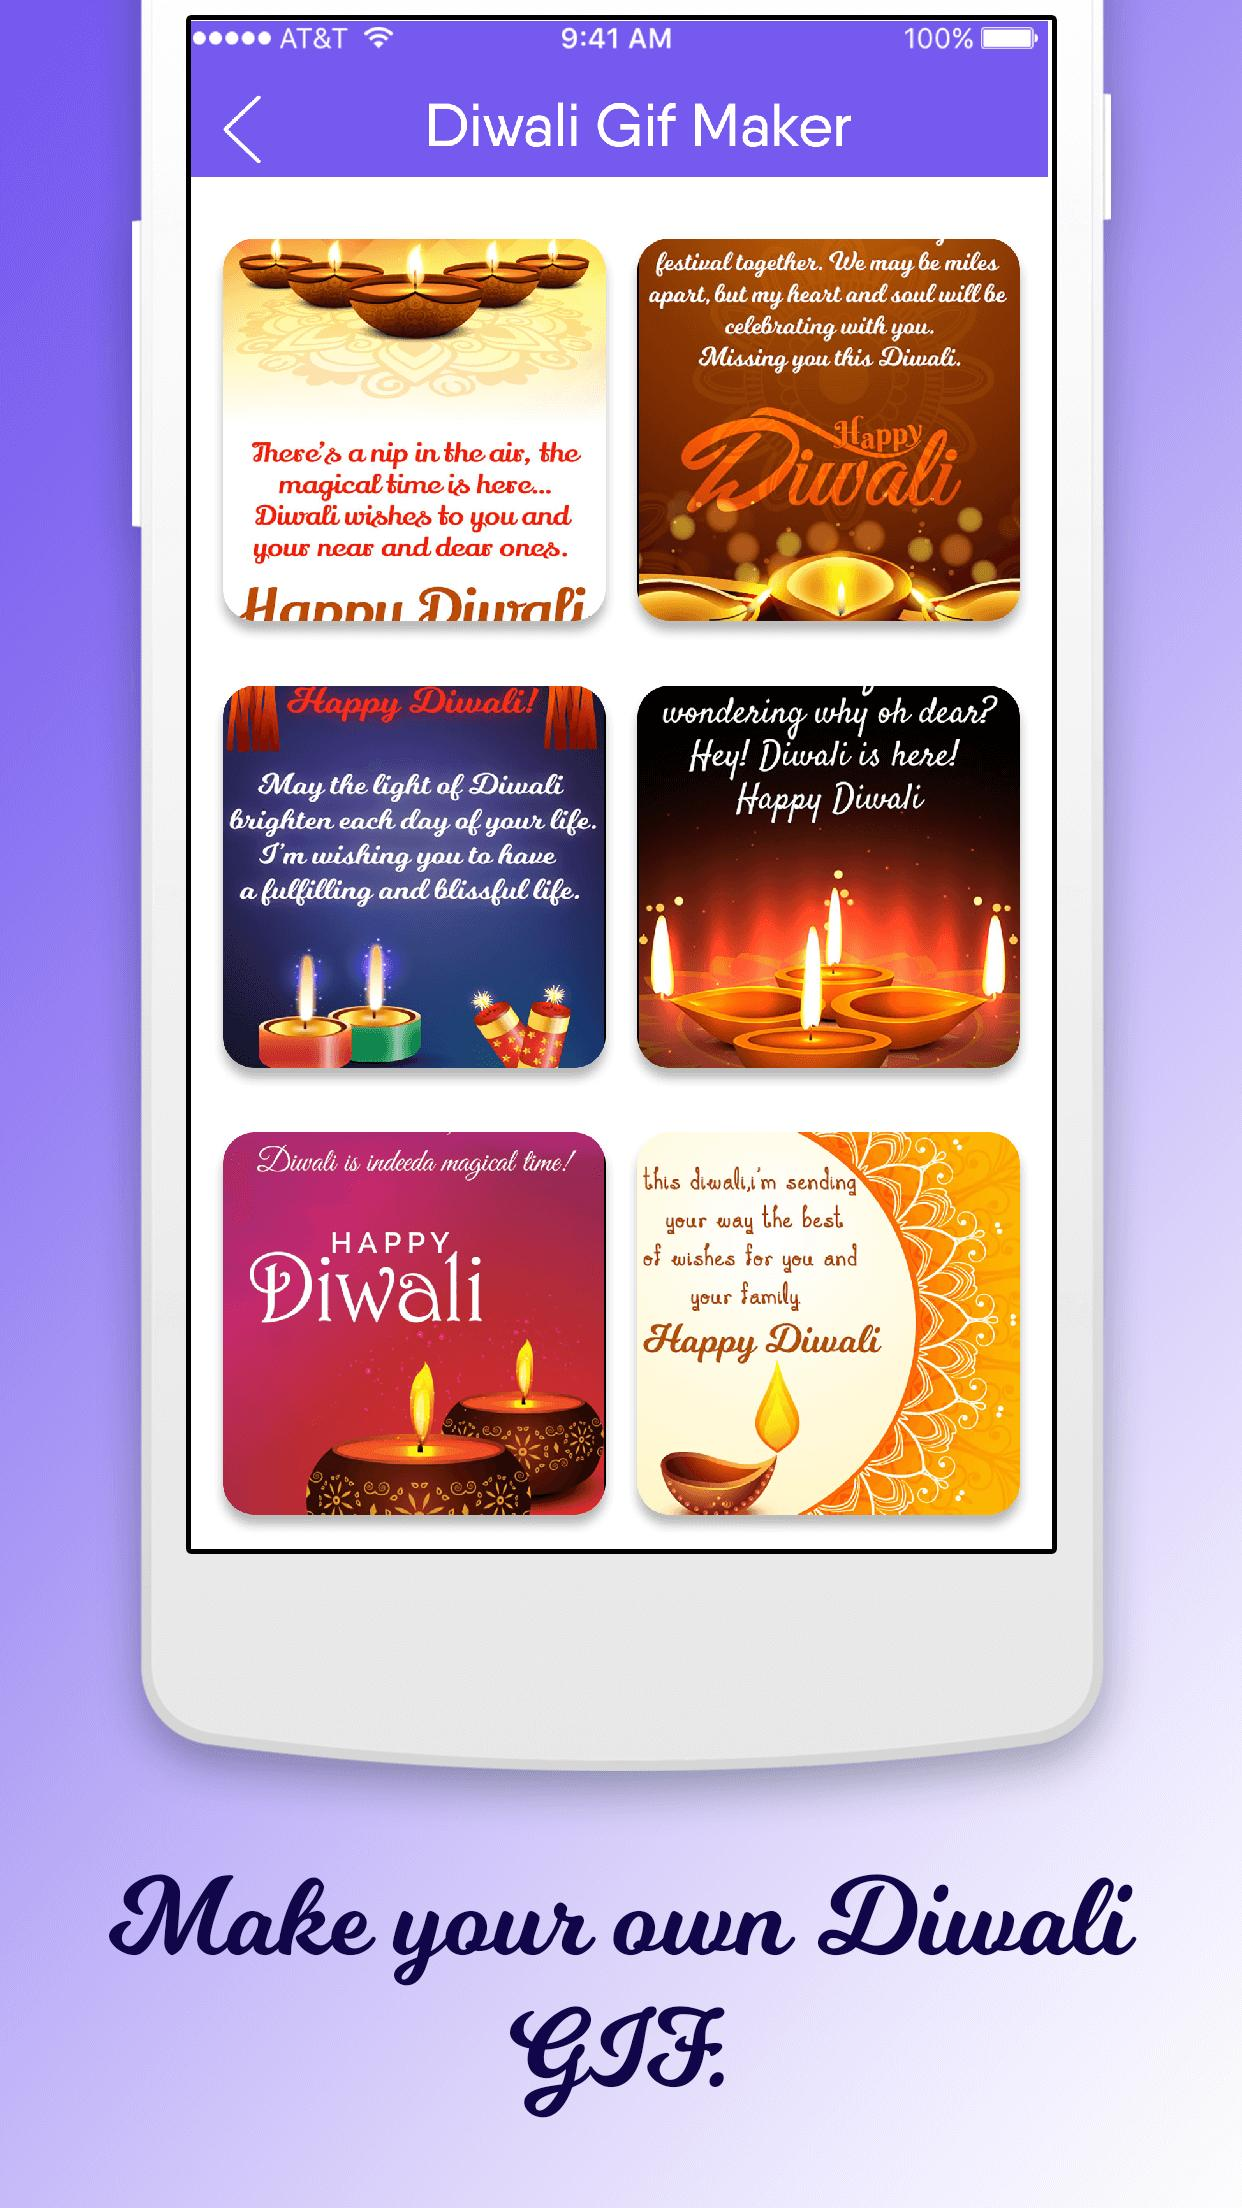 Diwali Gif With Name Diwali Gif Video Download For Android Apk Download